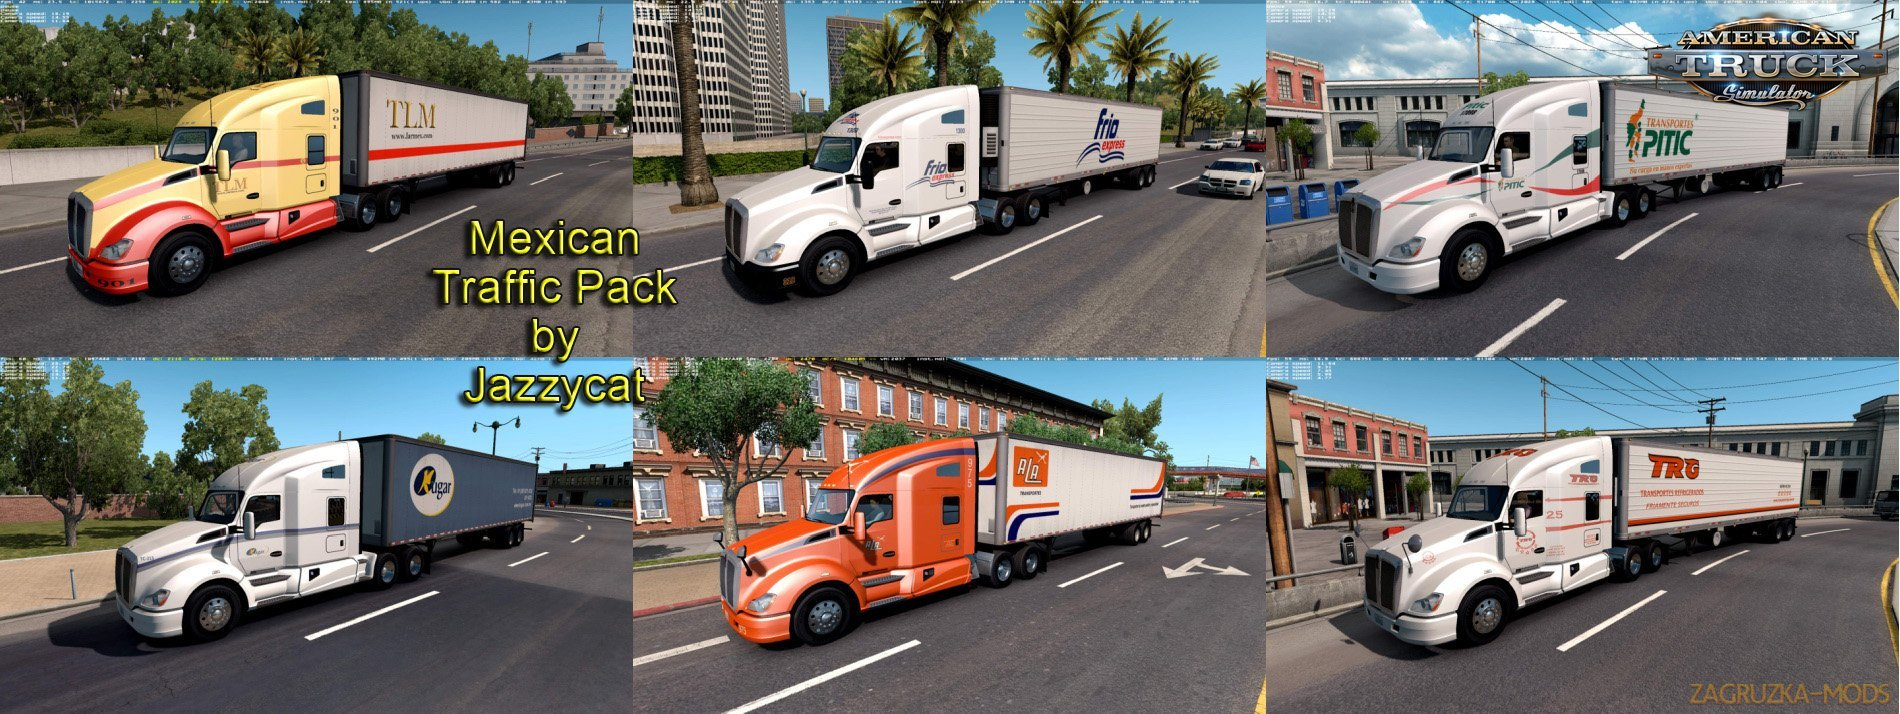 Mexican Traffic Pack v1.6 by Jazzycat